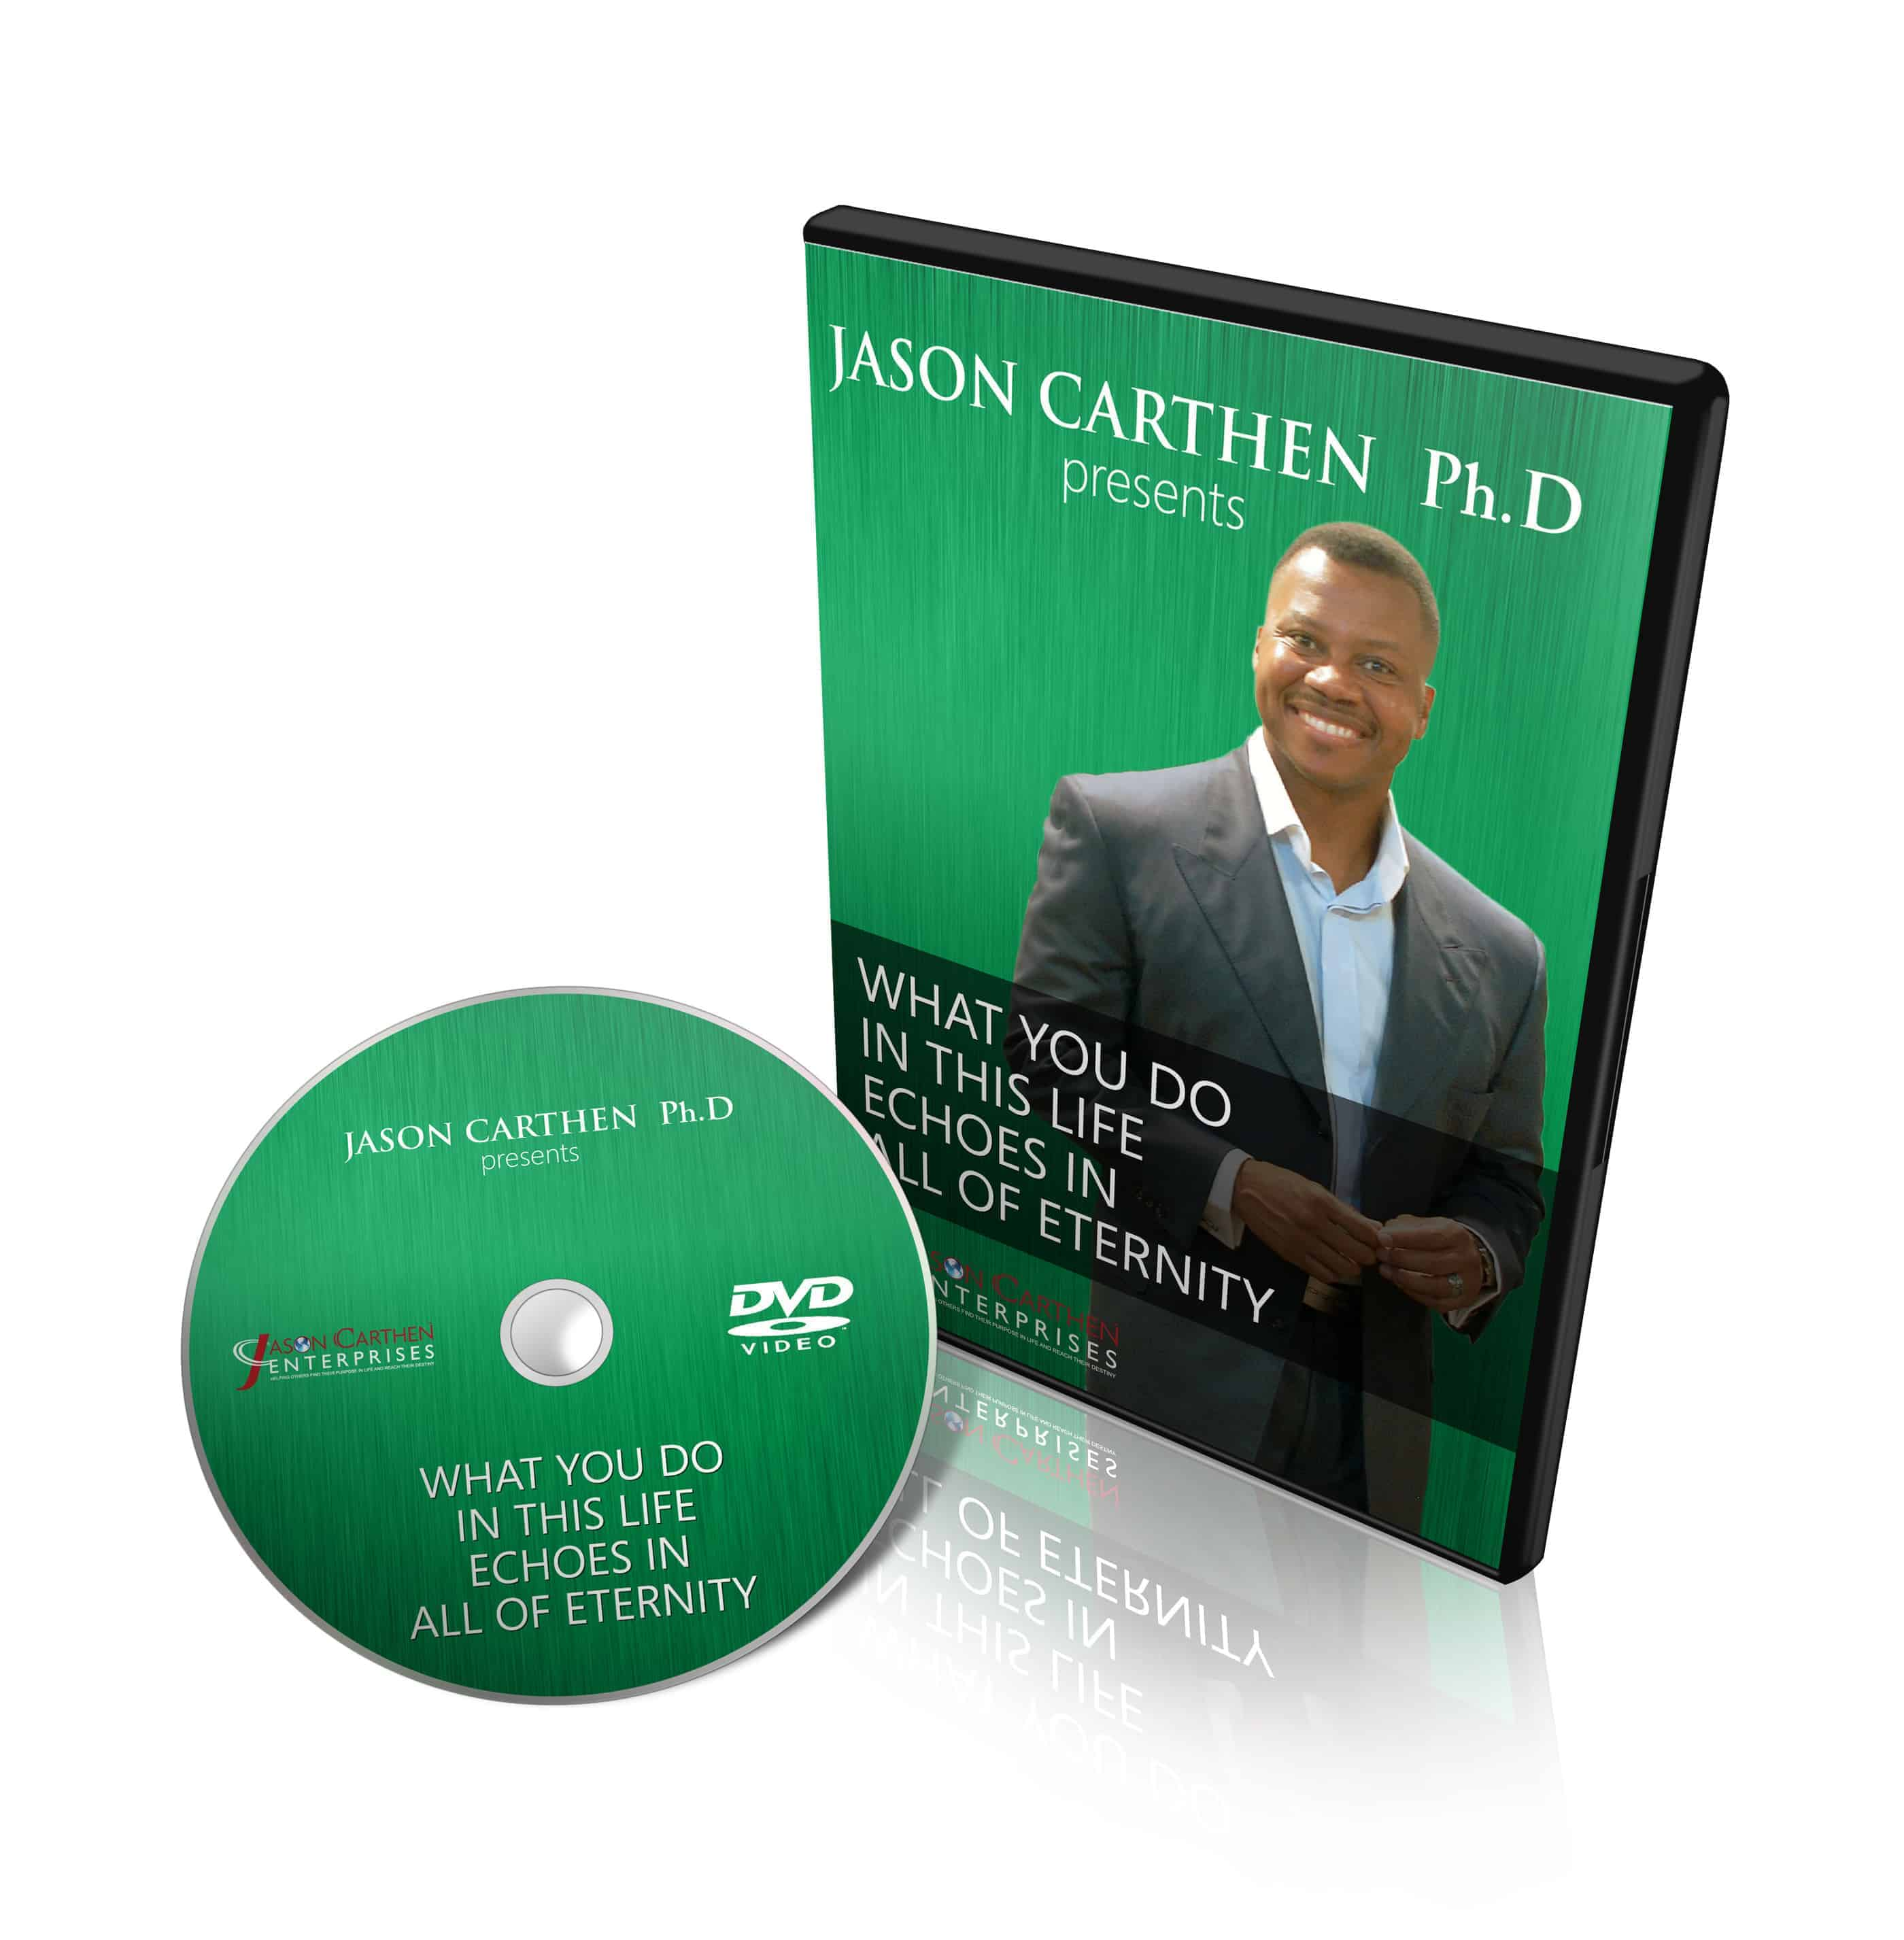 Dr. Jason Carthen: What You Do In Life Echoes in All of Eternity DVD